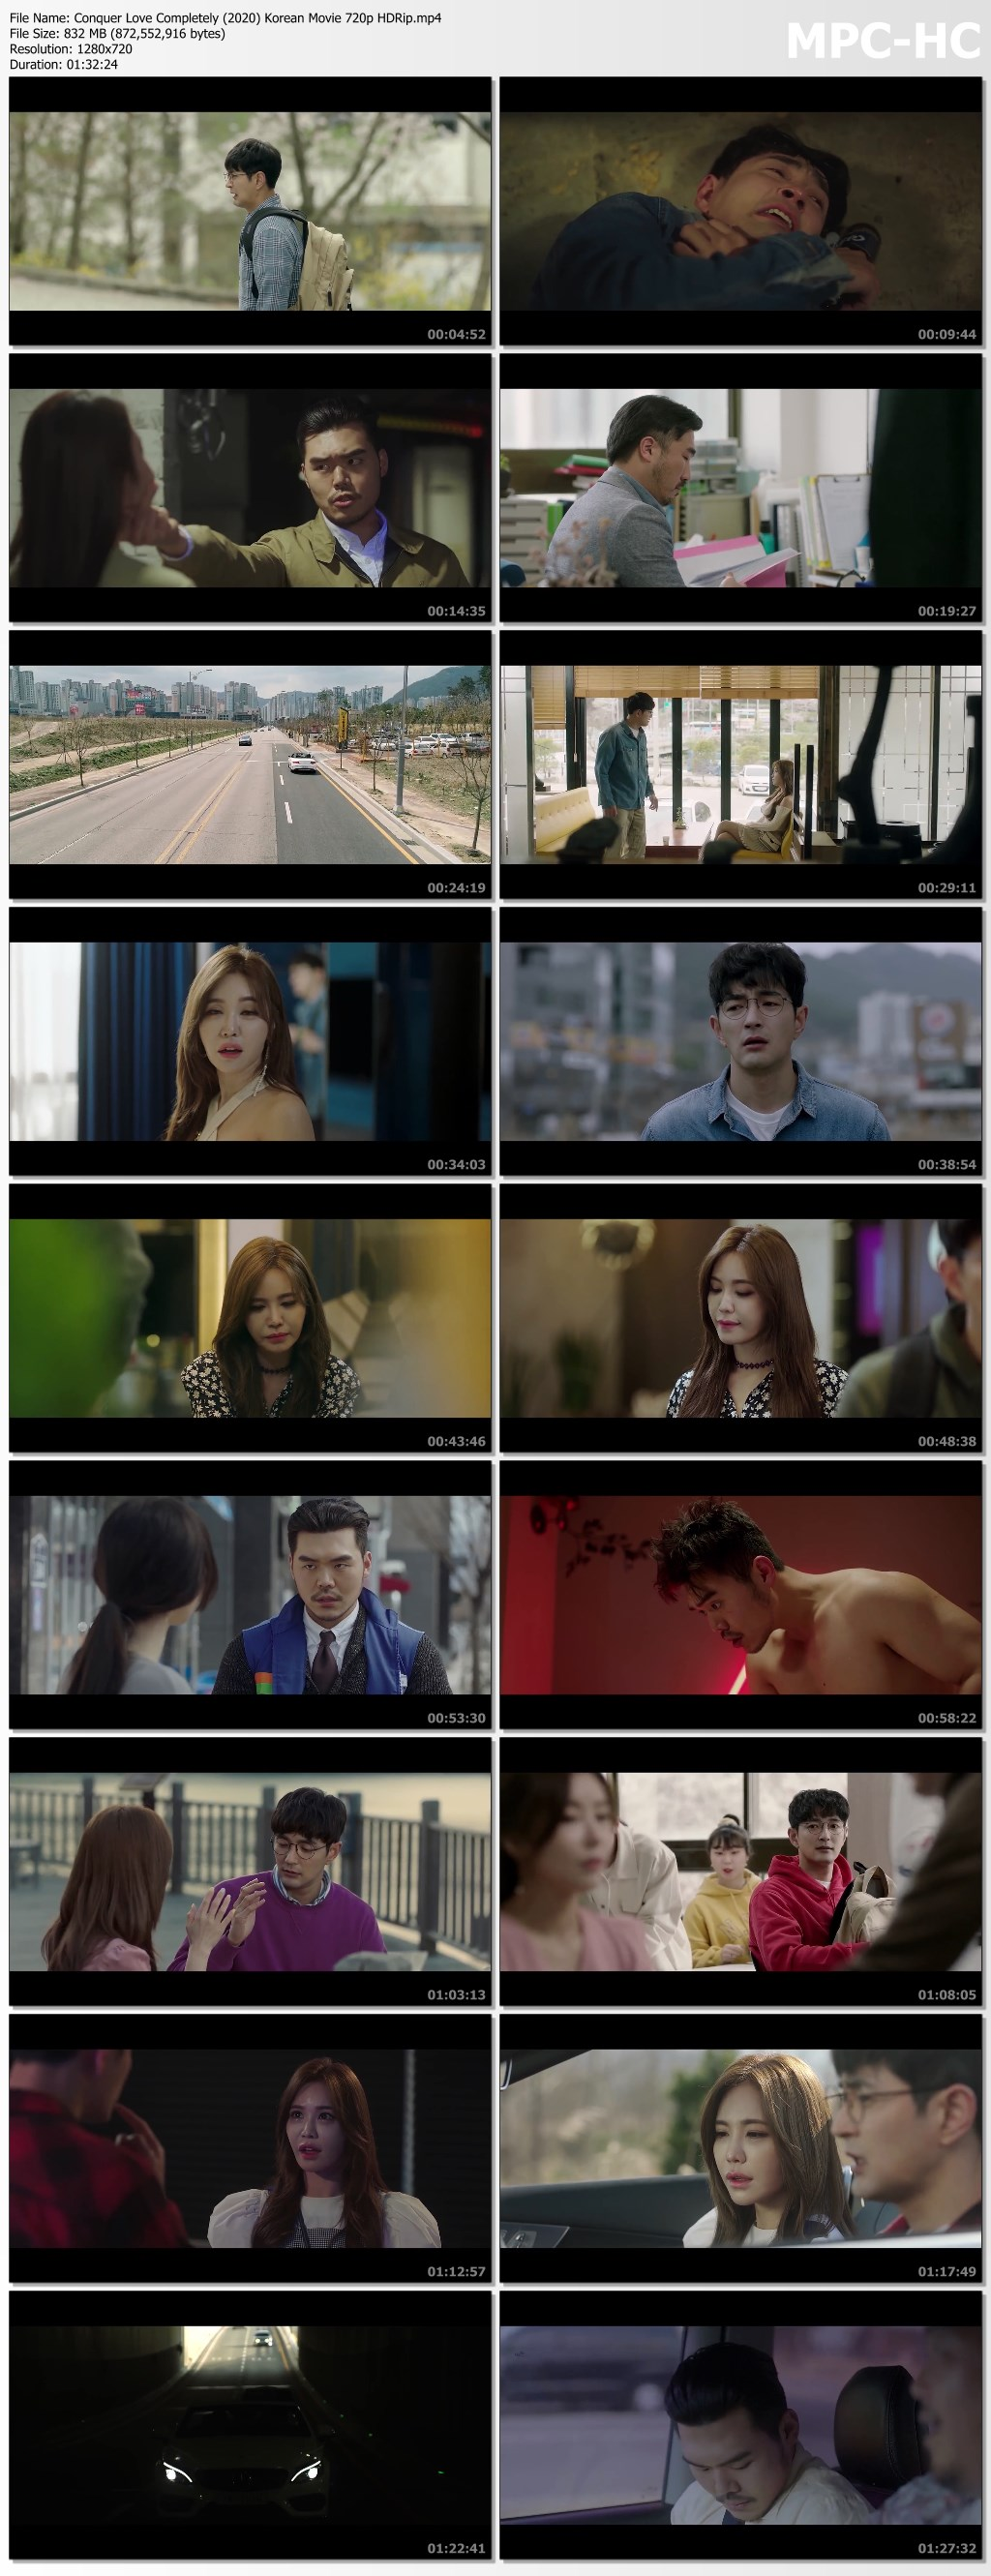 ConquerLoveCompletely2020KoreanMovie720pHDRip.mp4_thumbs0b902.jpg